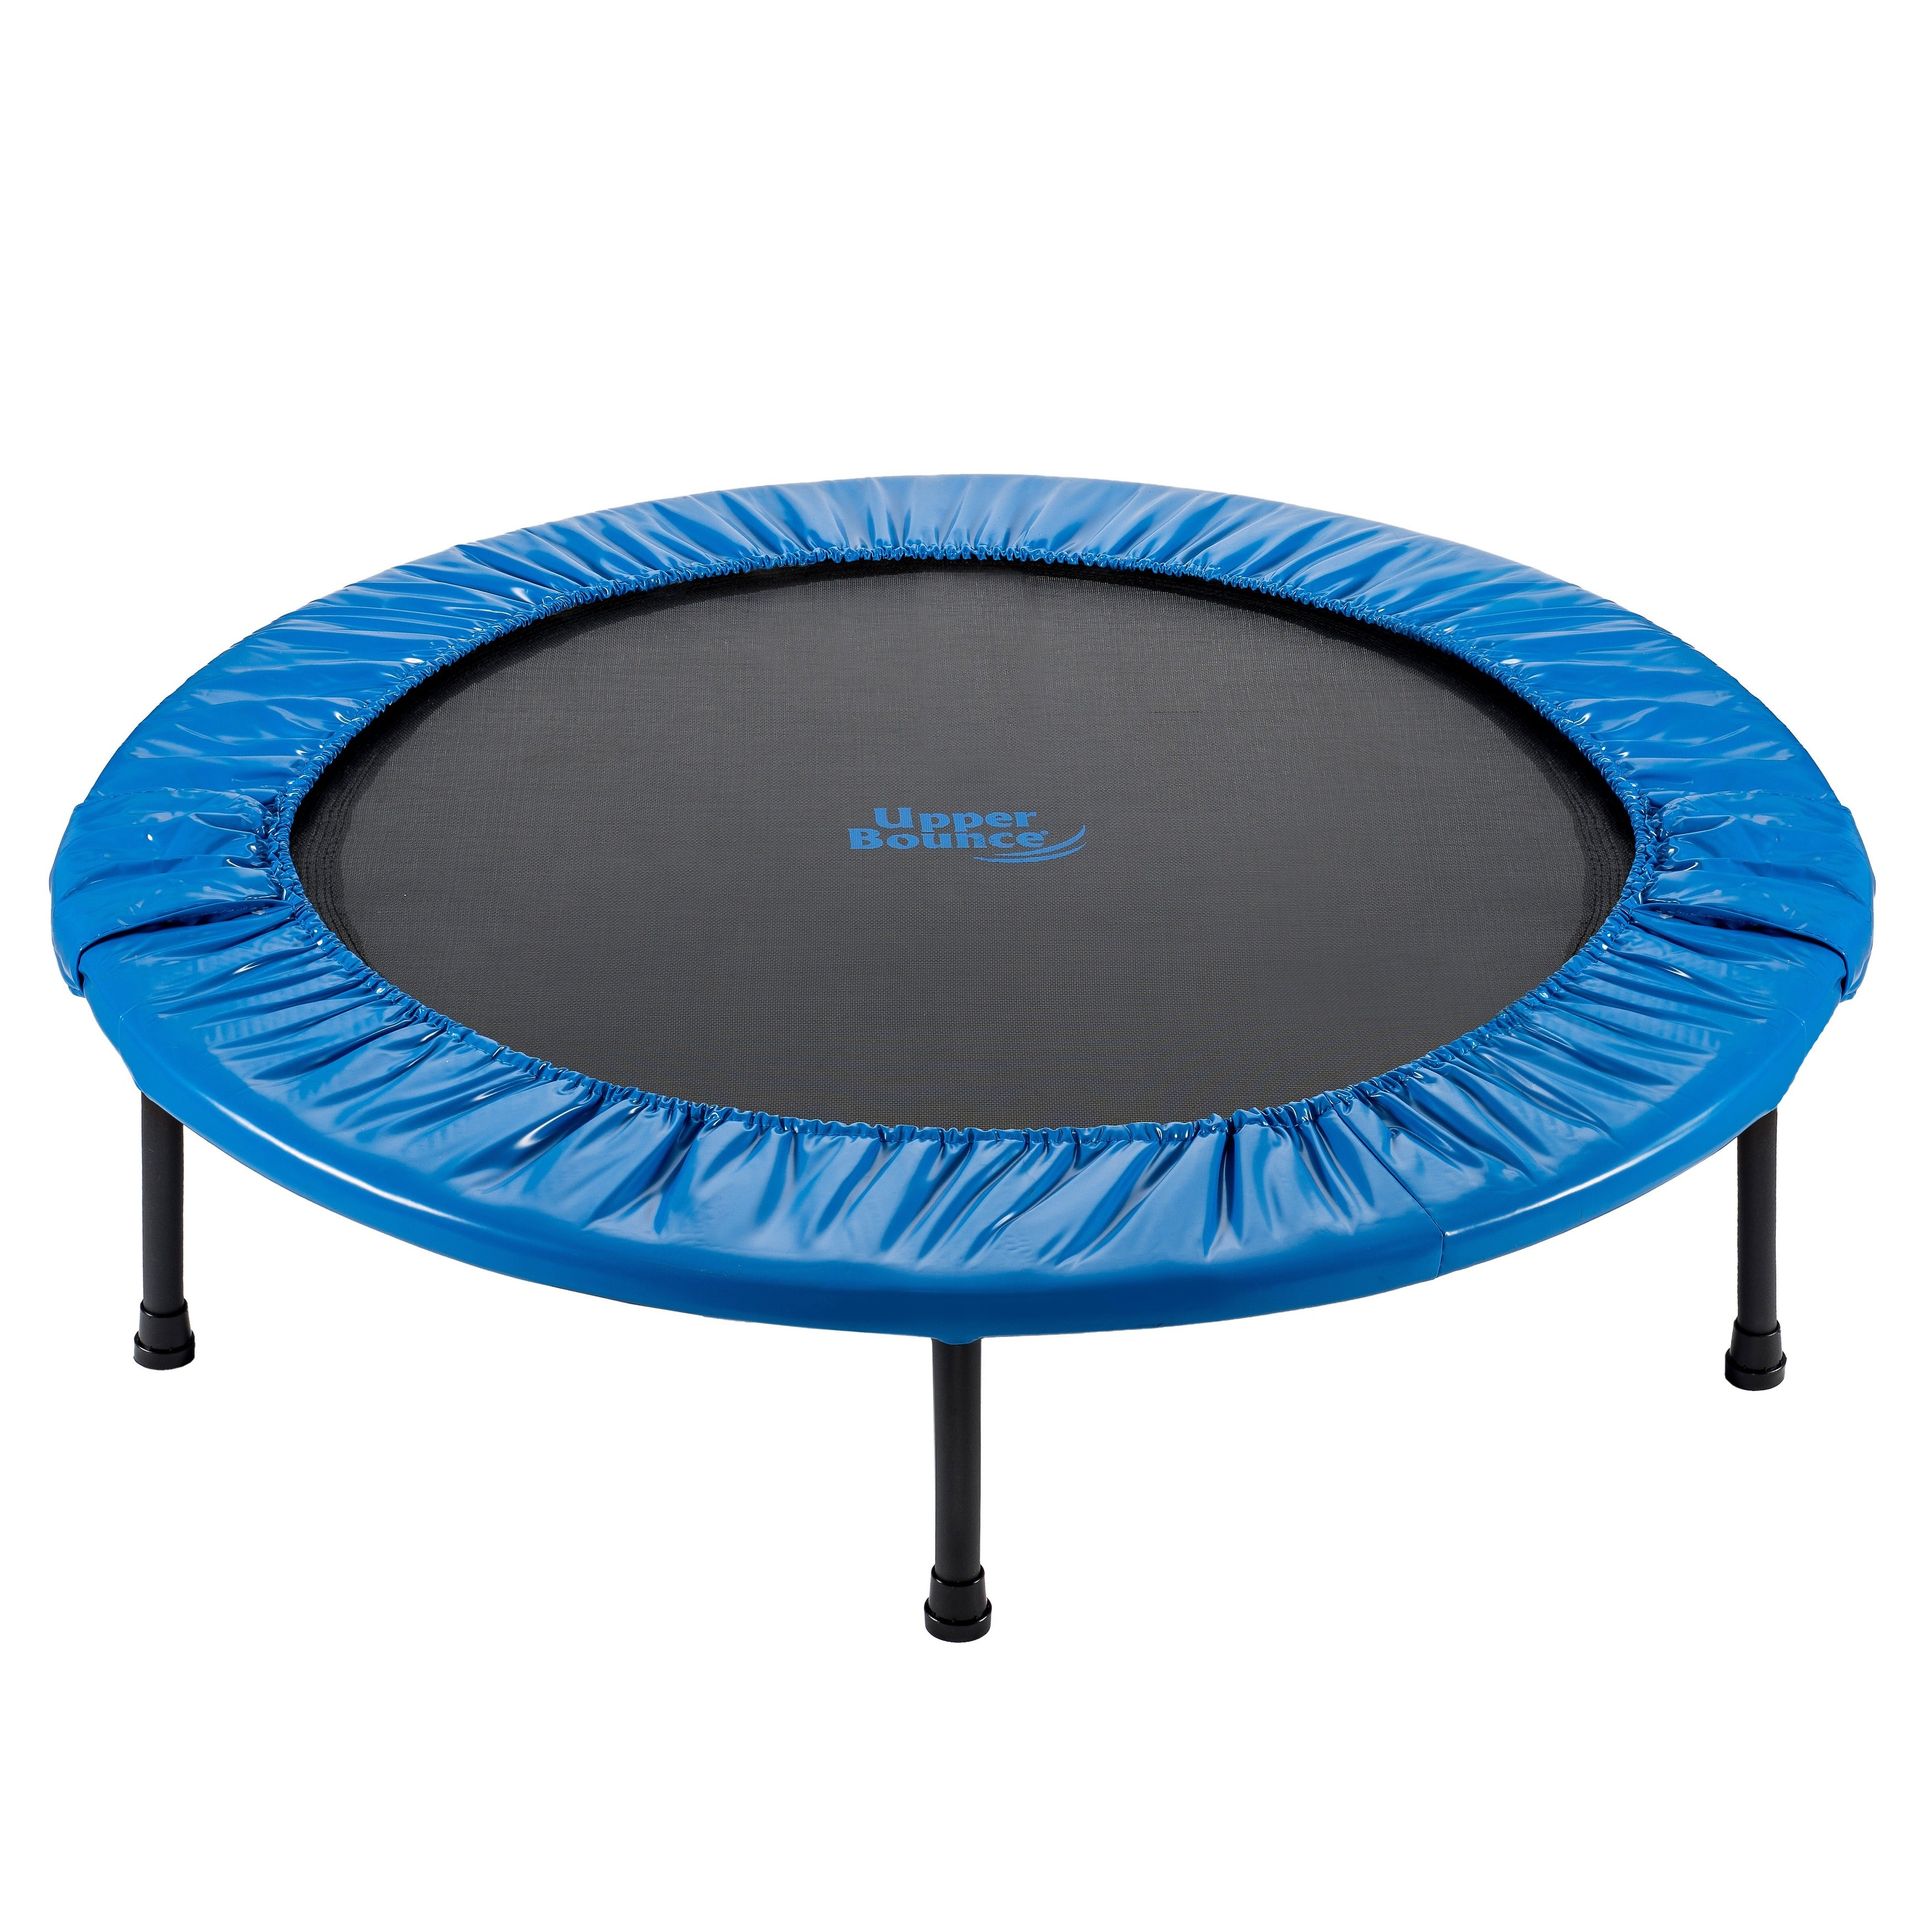 Upper Bounce 36-inch Mini Foldable Rebounder Fitness Trampoline at Sears.com